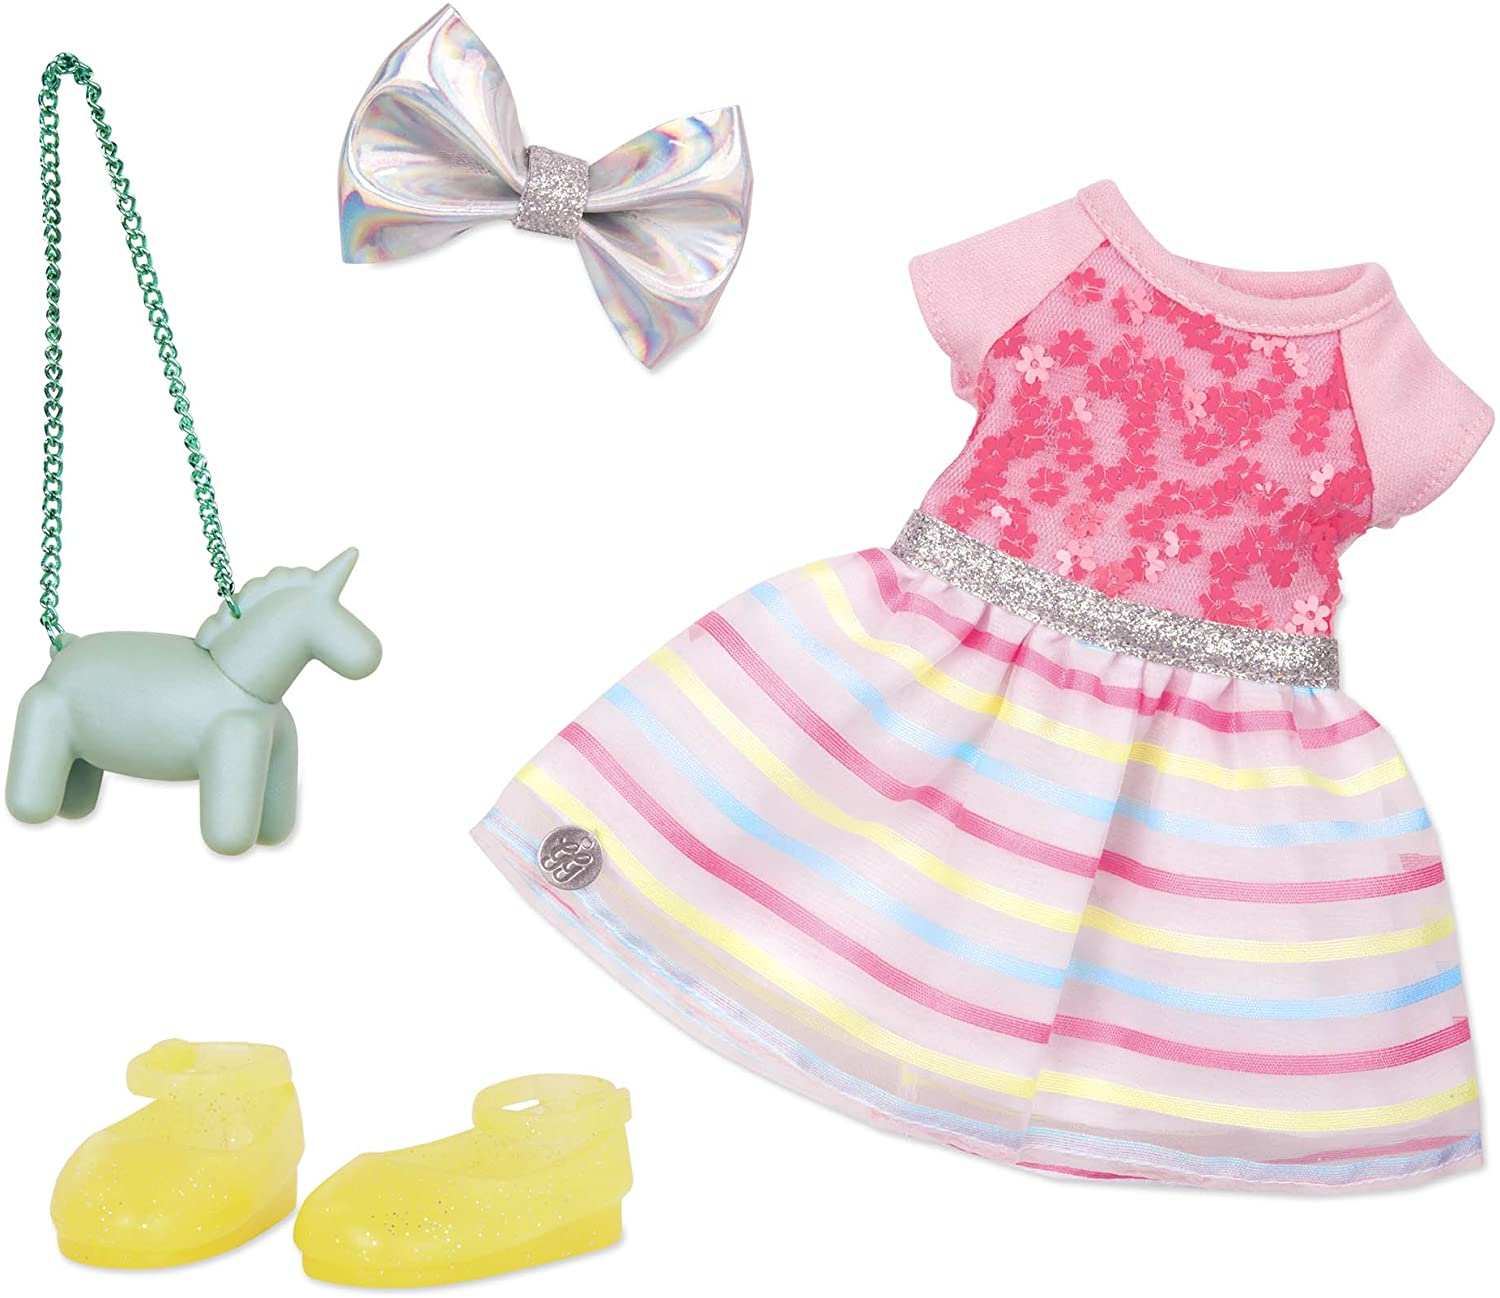 """Glitter Girls by Battat - Shiny Flowers In Bloom Outfit -14"""" Doll Clothes– Toys, Clothes & Accessories For Girls 3-Year-Old & Up (GG50107Z)"""